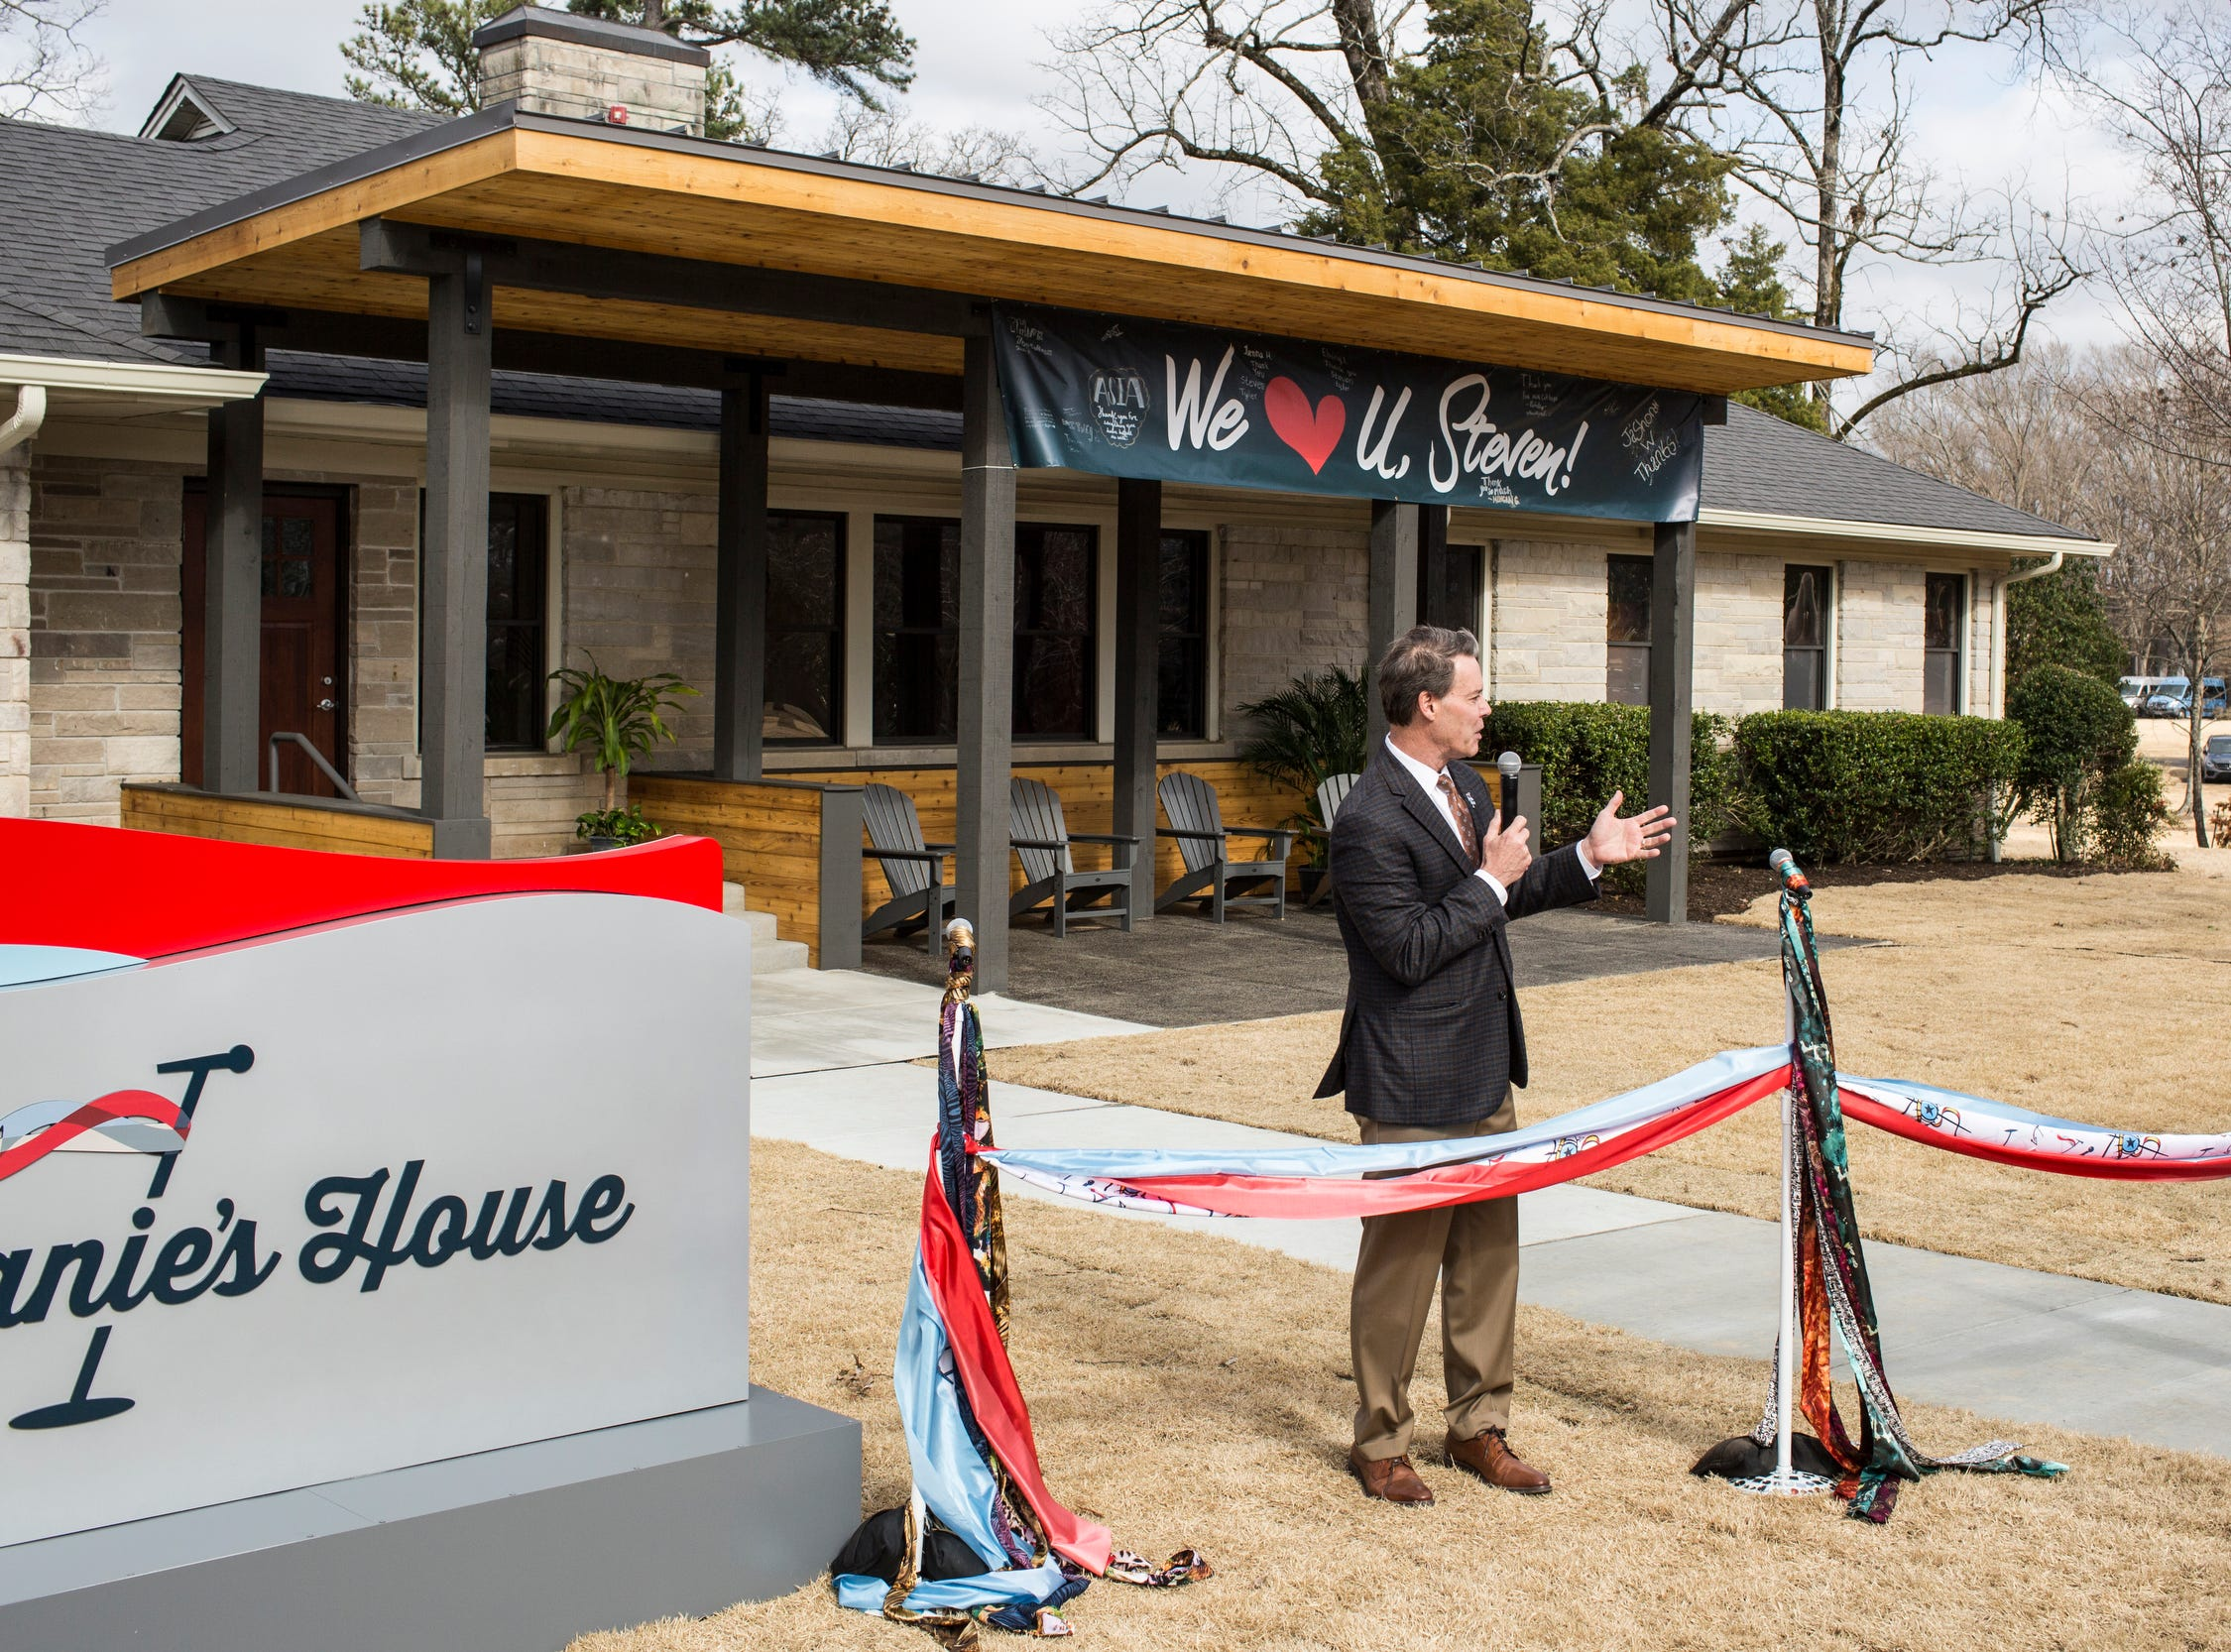 February 04 2019 - Patrick Lawler, CEO Youth Villages, speaks during a scarf-cutting celebration outside of Janie's House at Youth Villages in Bartlett. Janie's Fund paid for the renovations of the existing home for girls and Youth Villages renamed it a Janie's House.